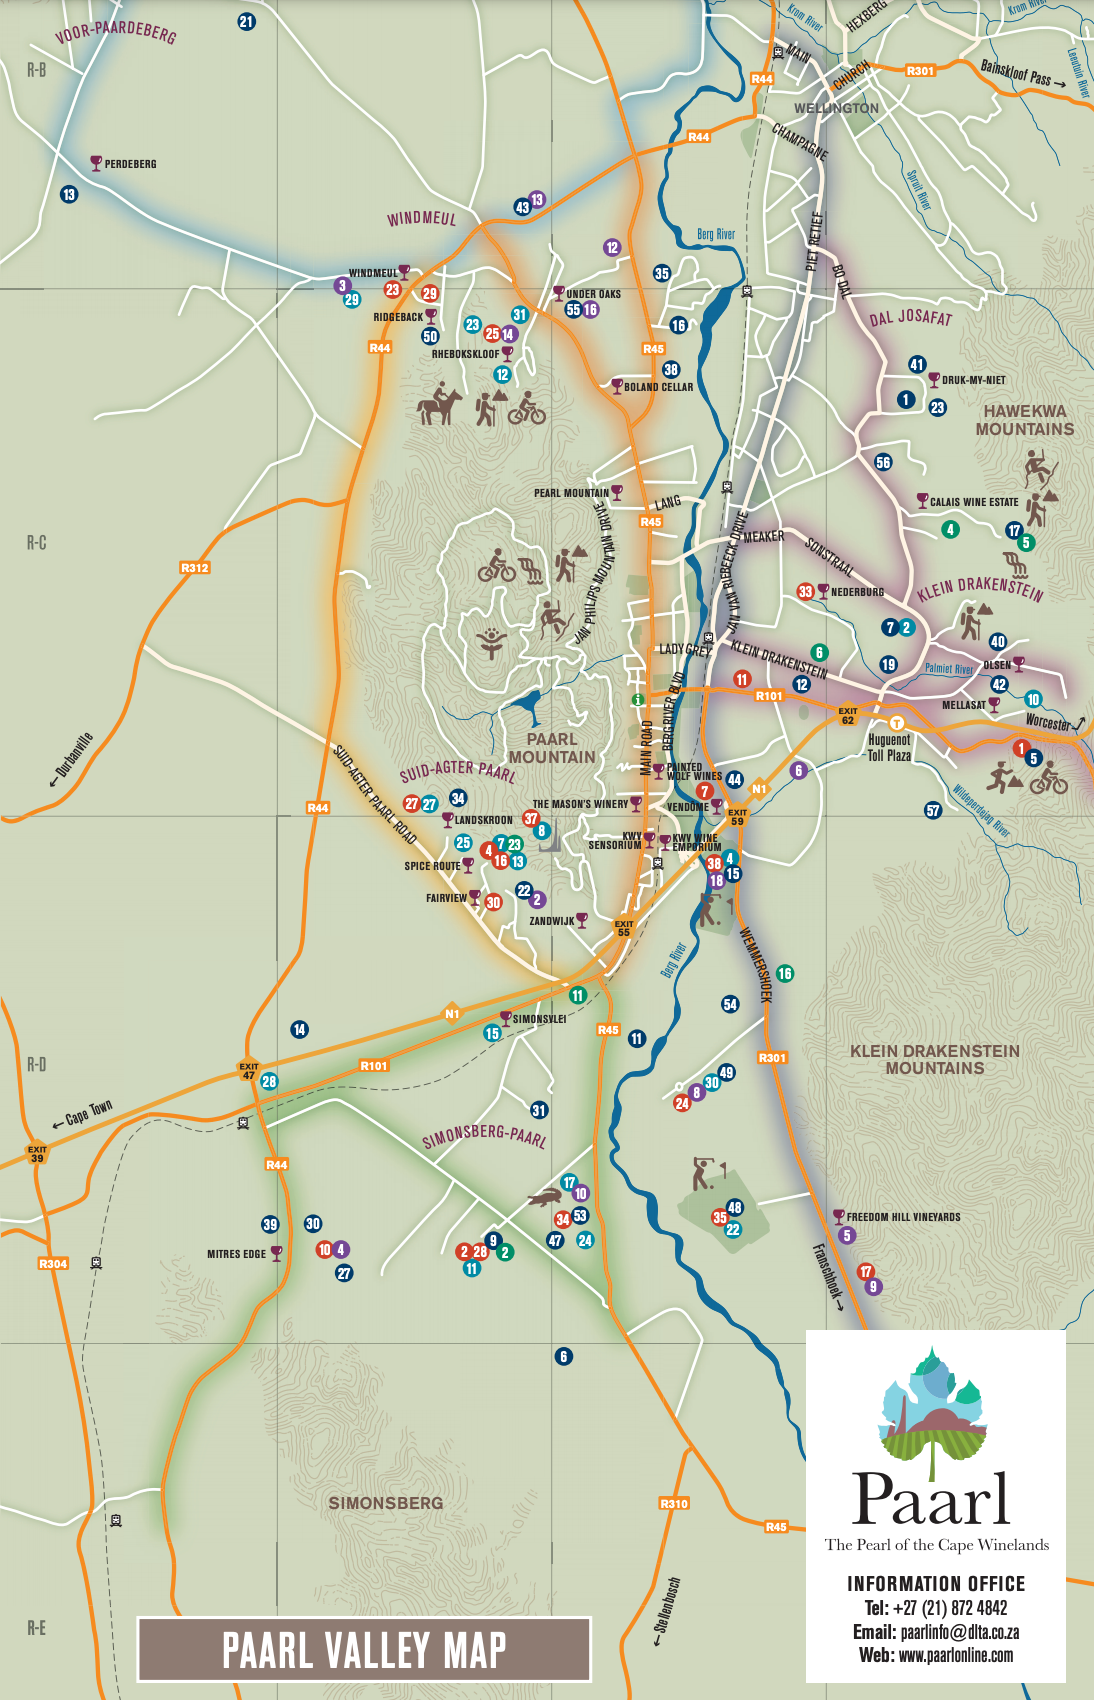 Map of the Paarl Wine Route